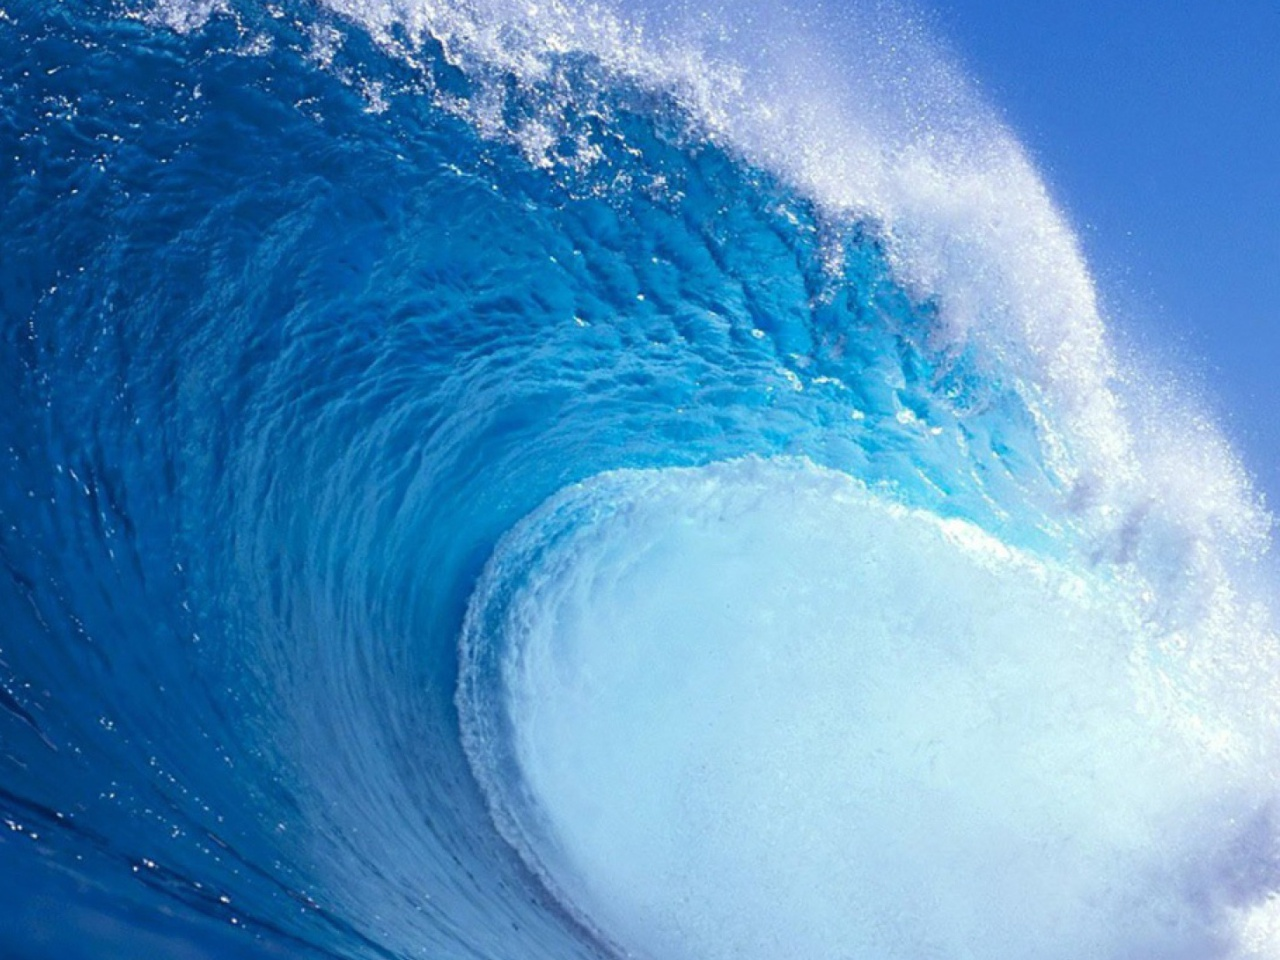 free 1280X960 Surf Wave 1280x960 wallpaper screensaver preview id 1280x960